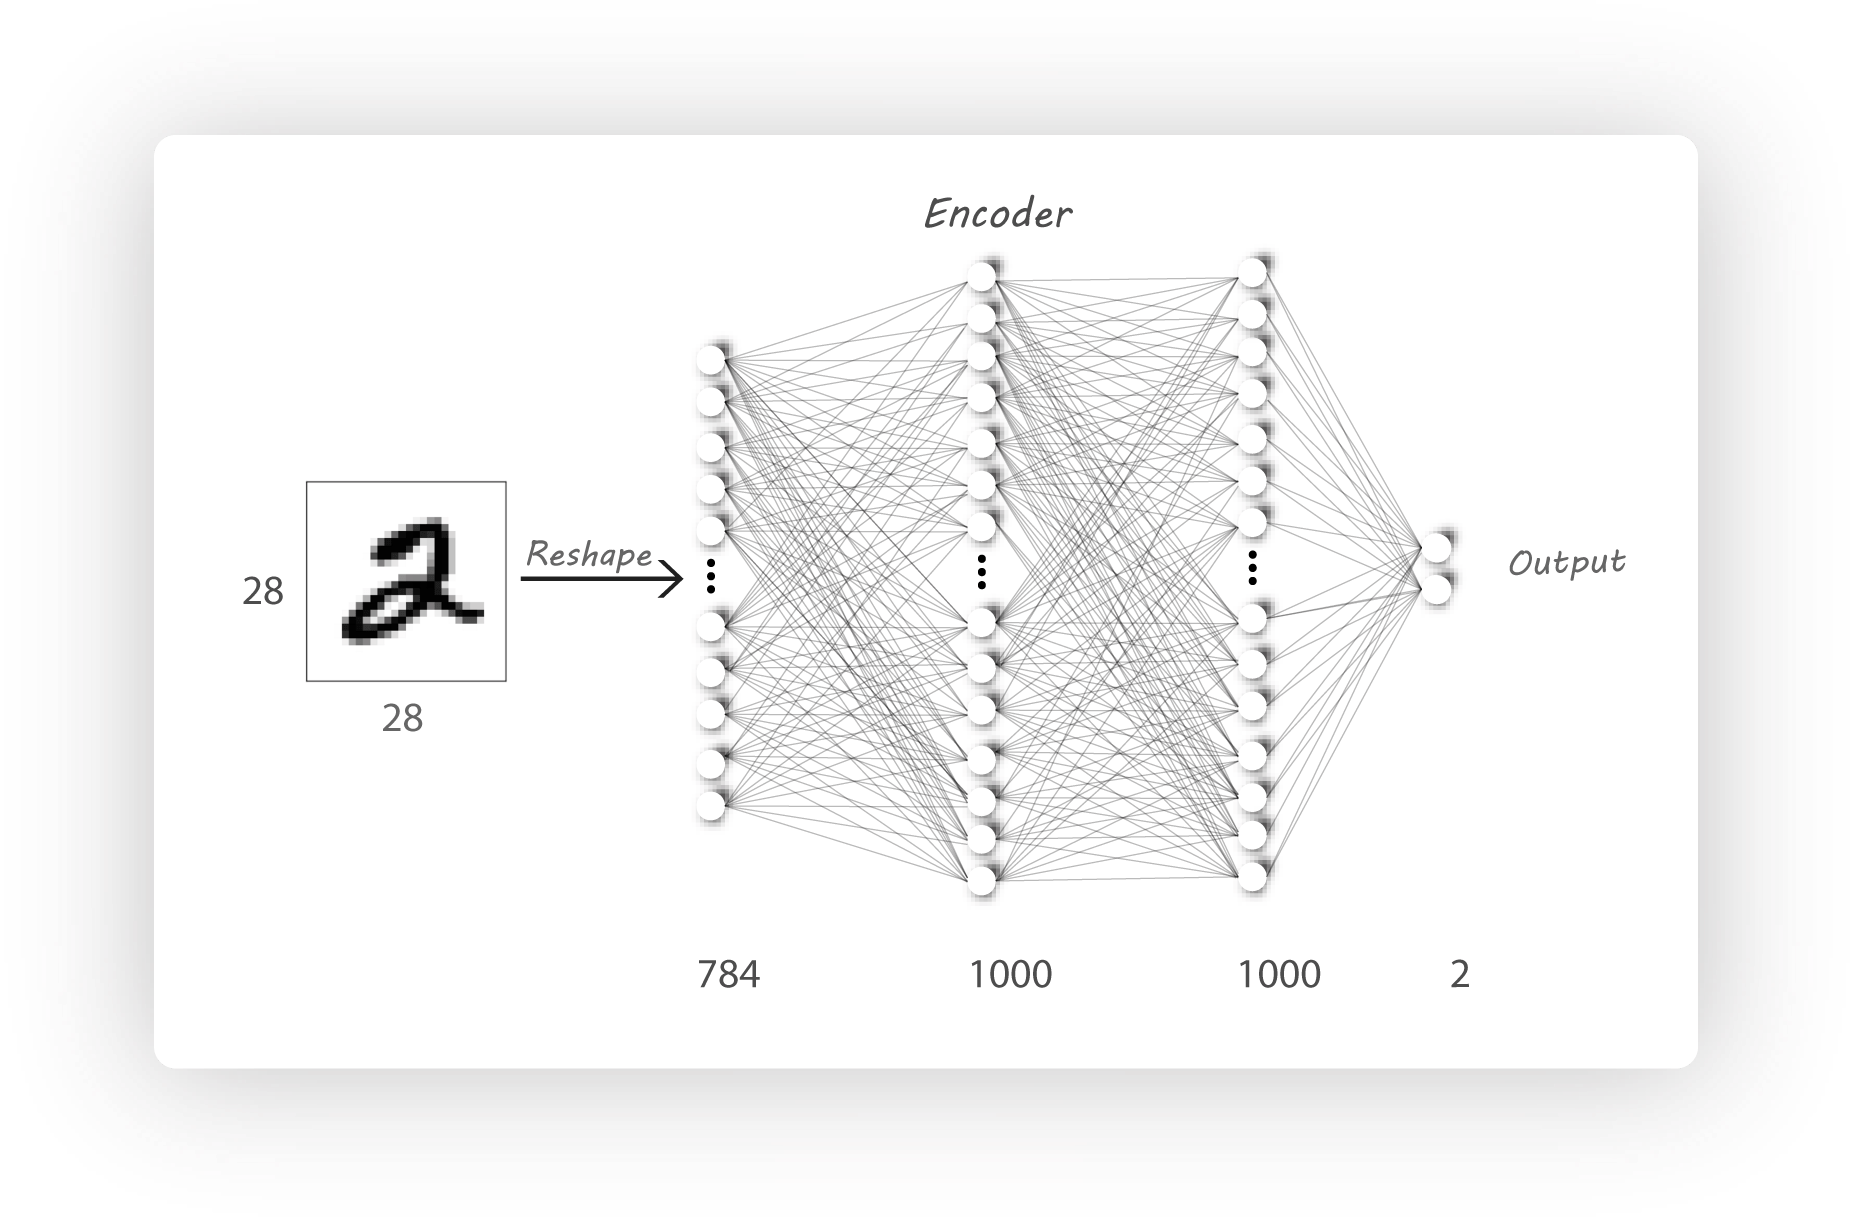 A wizard's guide to Adversarial Autoencoders: Part 1